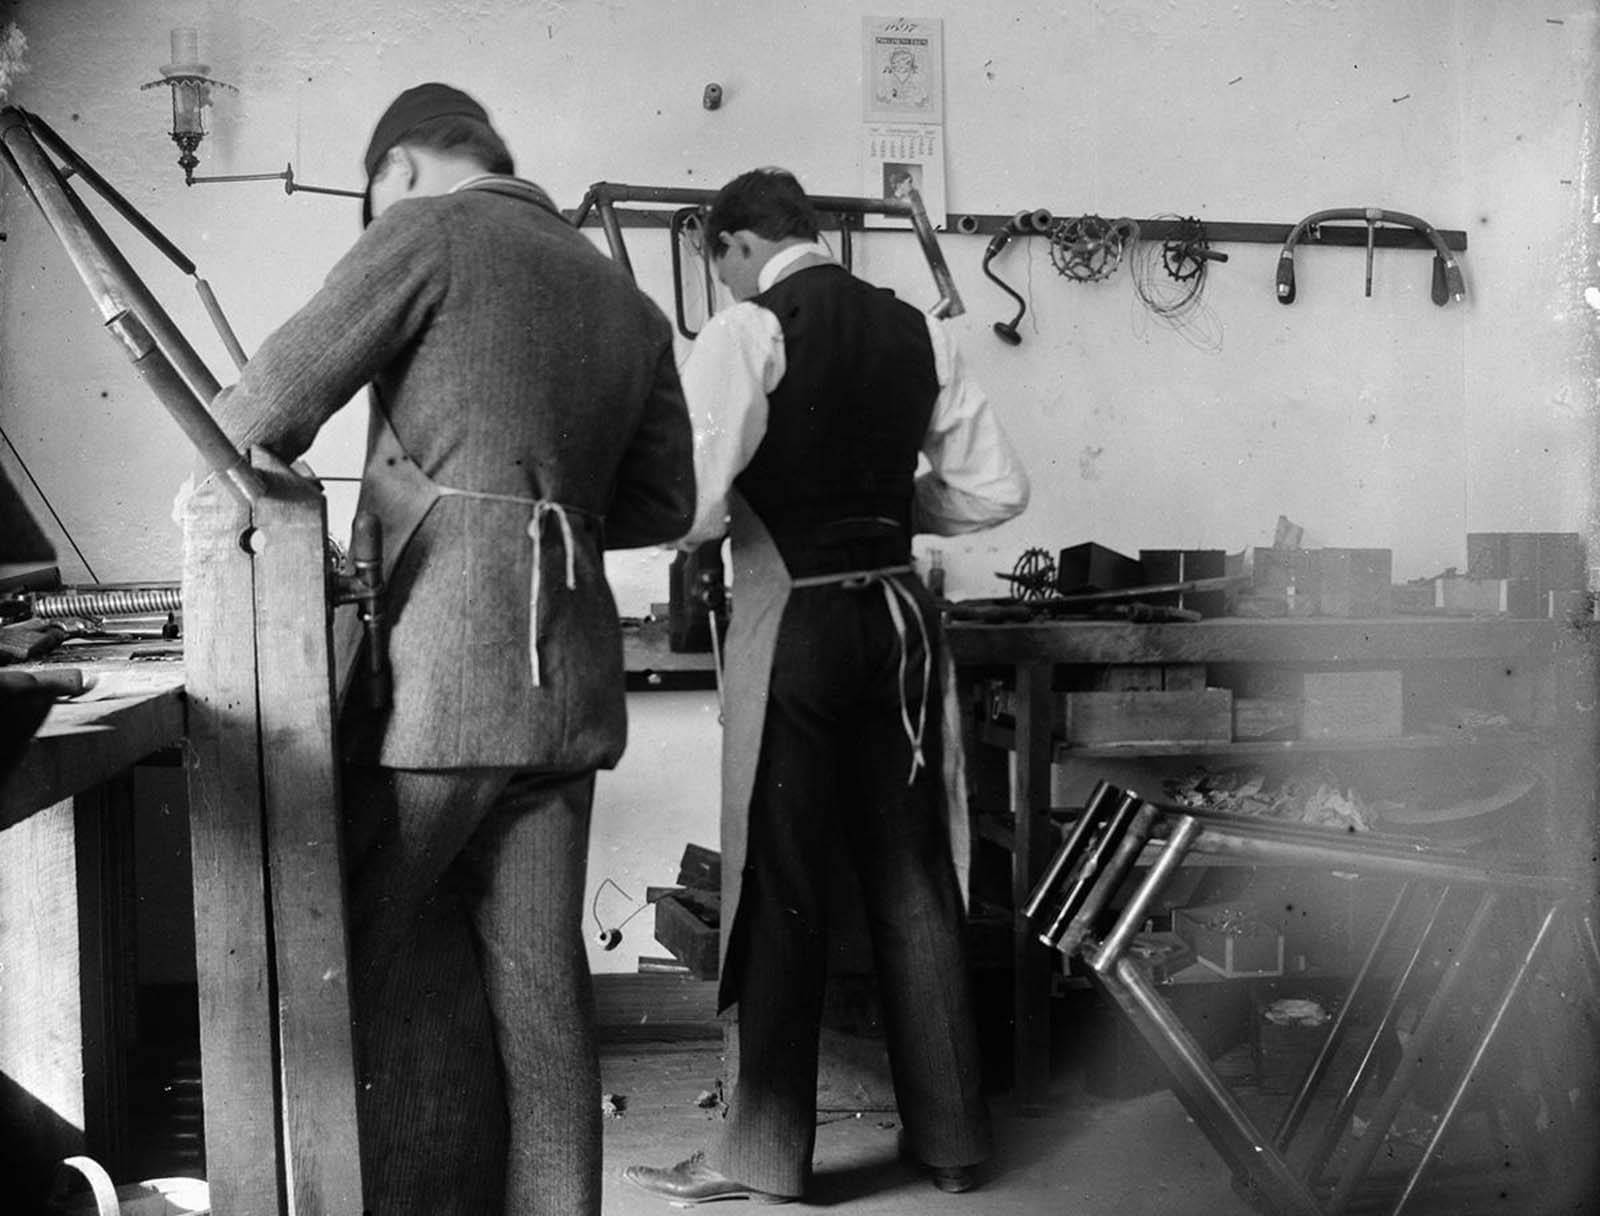 Orville Wright and Edwin H. Sines, neighbor and boyhood friend, filing frames in the back of the Wright bicycle shop in 1897.